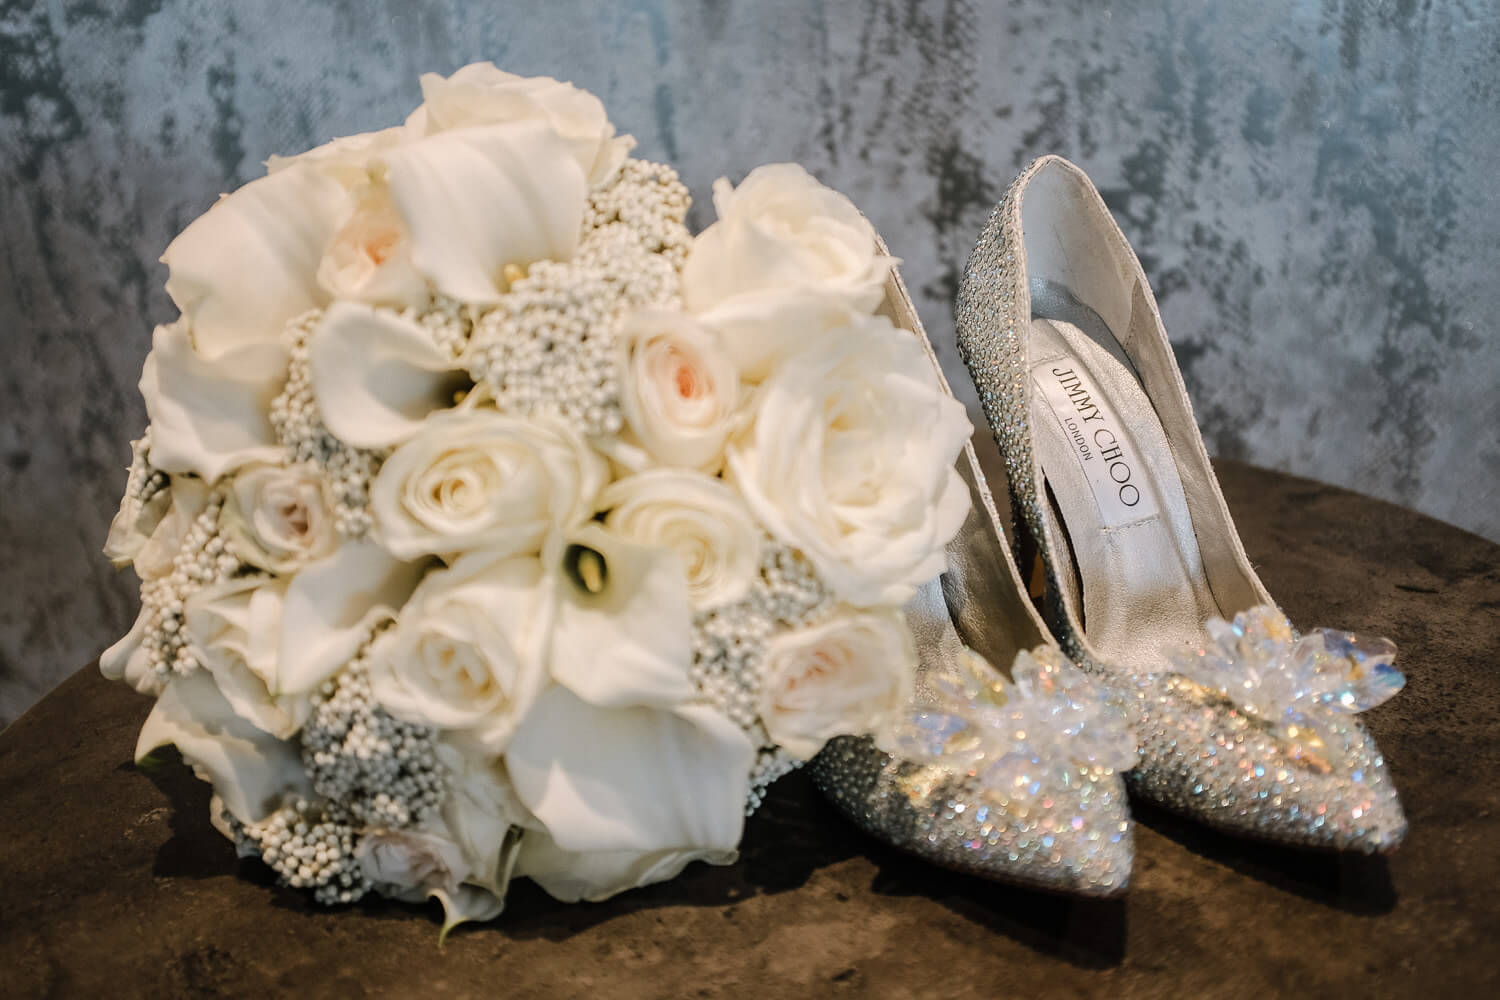 Jimmy Choo wedding shoes and flowers